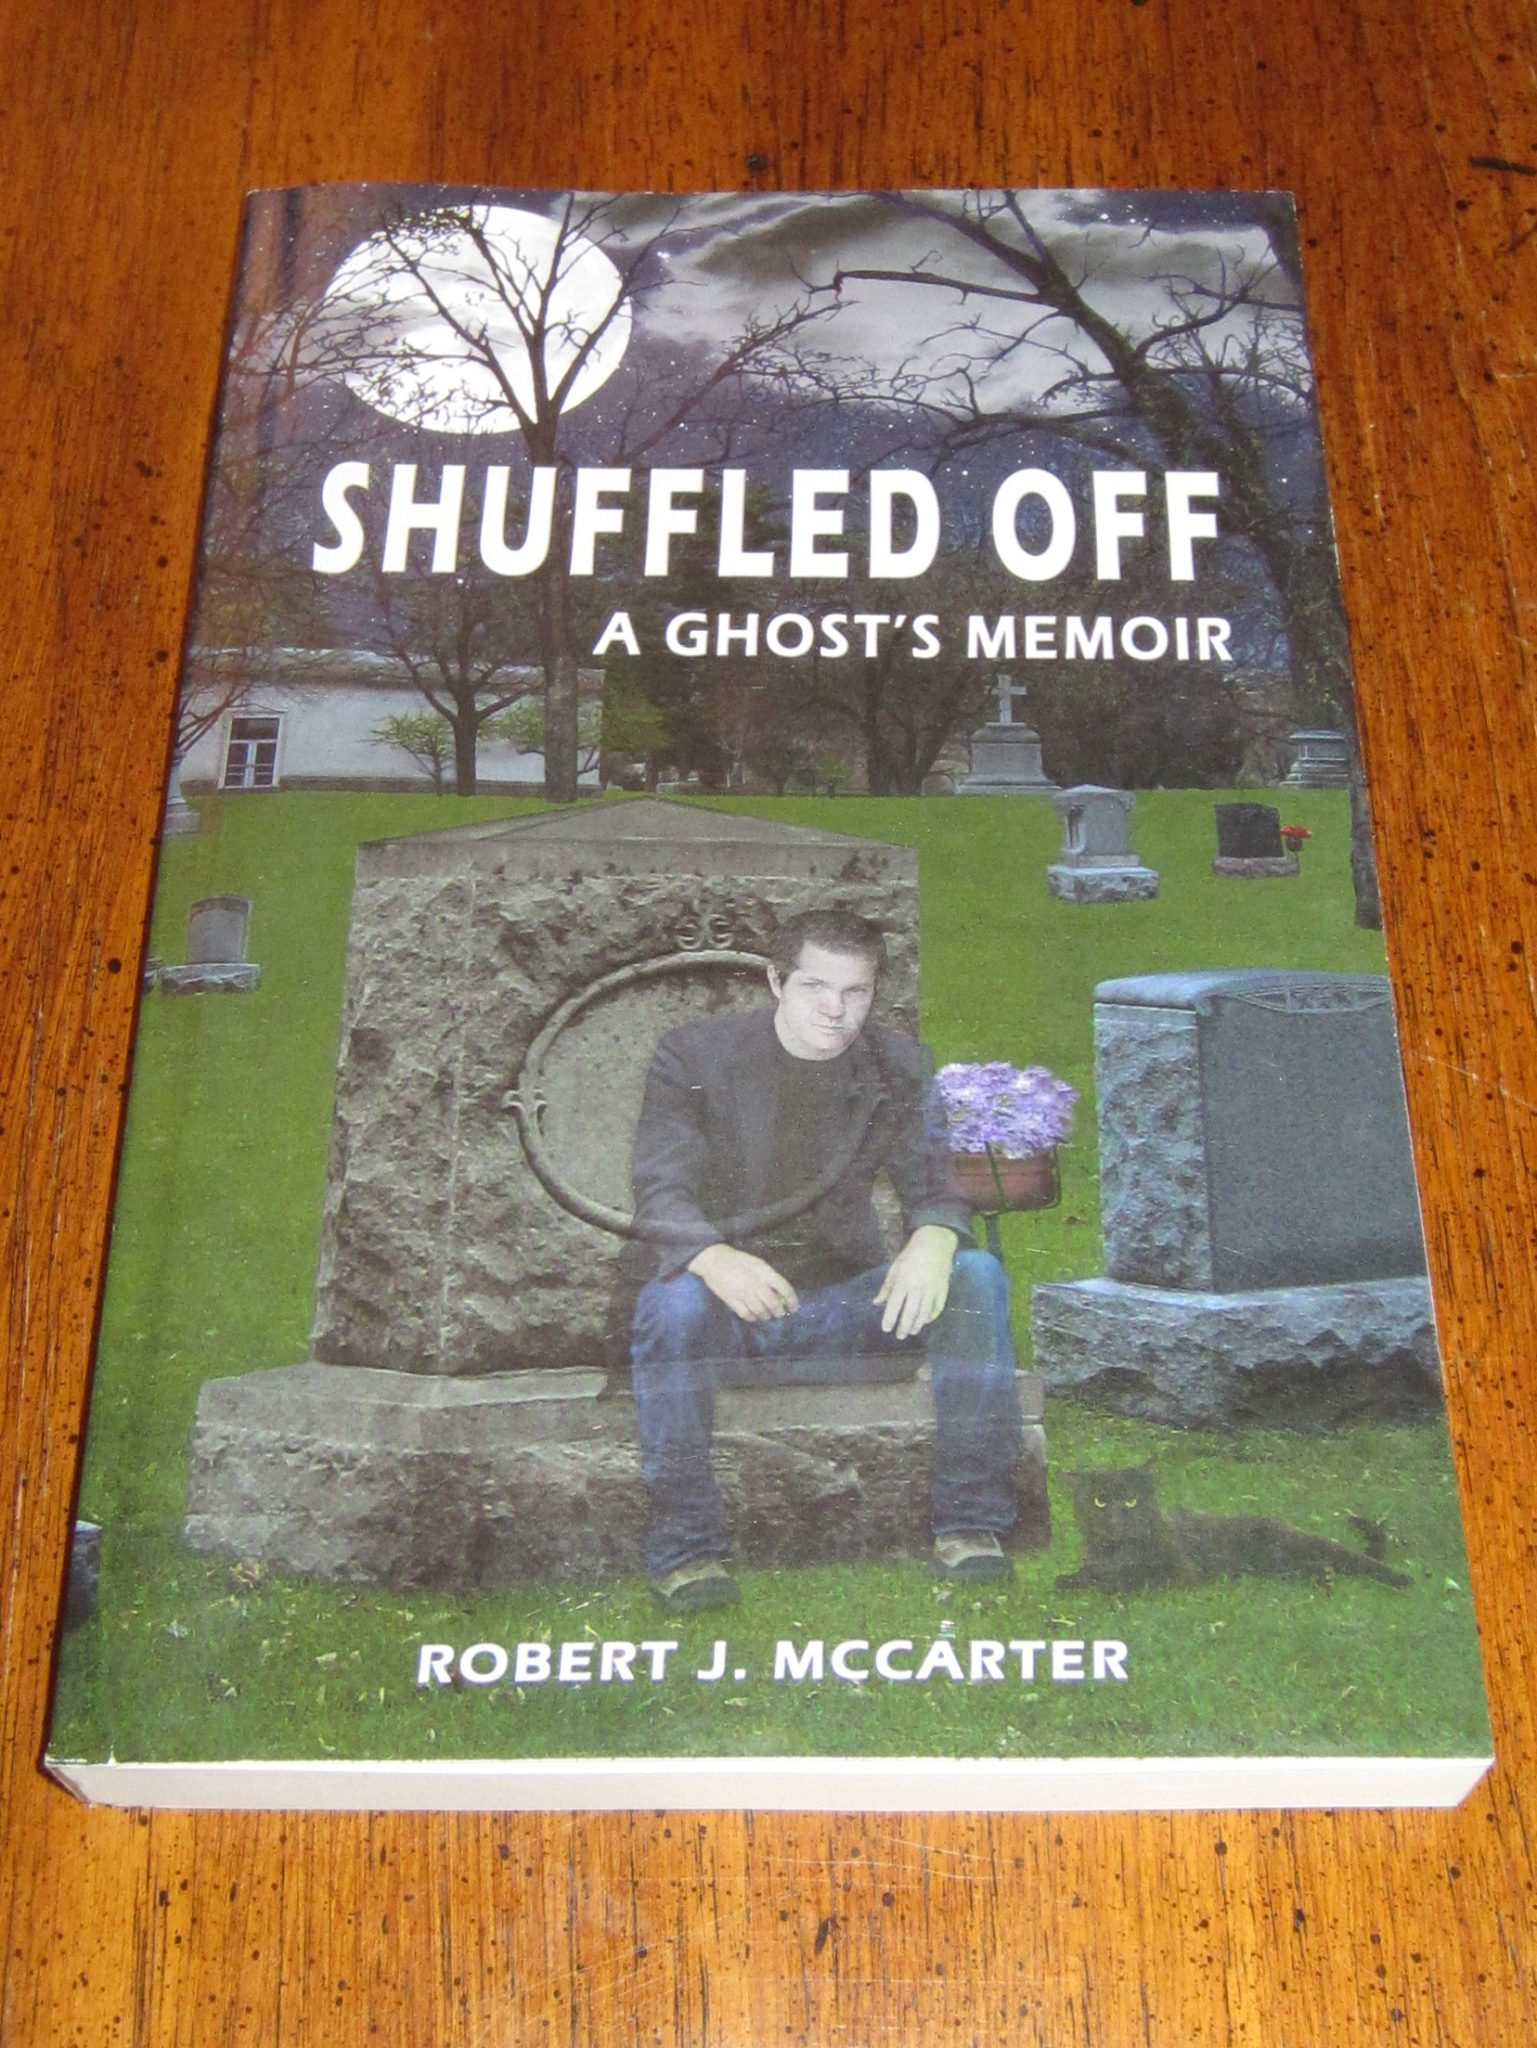 Shuffled Off Is A Firstperson Ghost Story That Follows Jj Into The  Afterlife As One Reviewer Put It: €� A Fast Paced Enjoyable Reading  Experience That Held